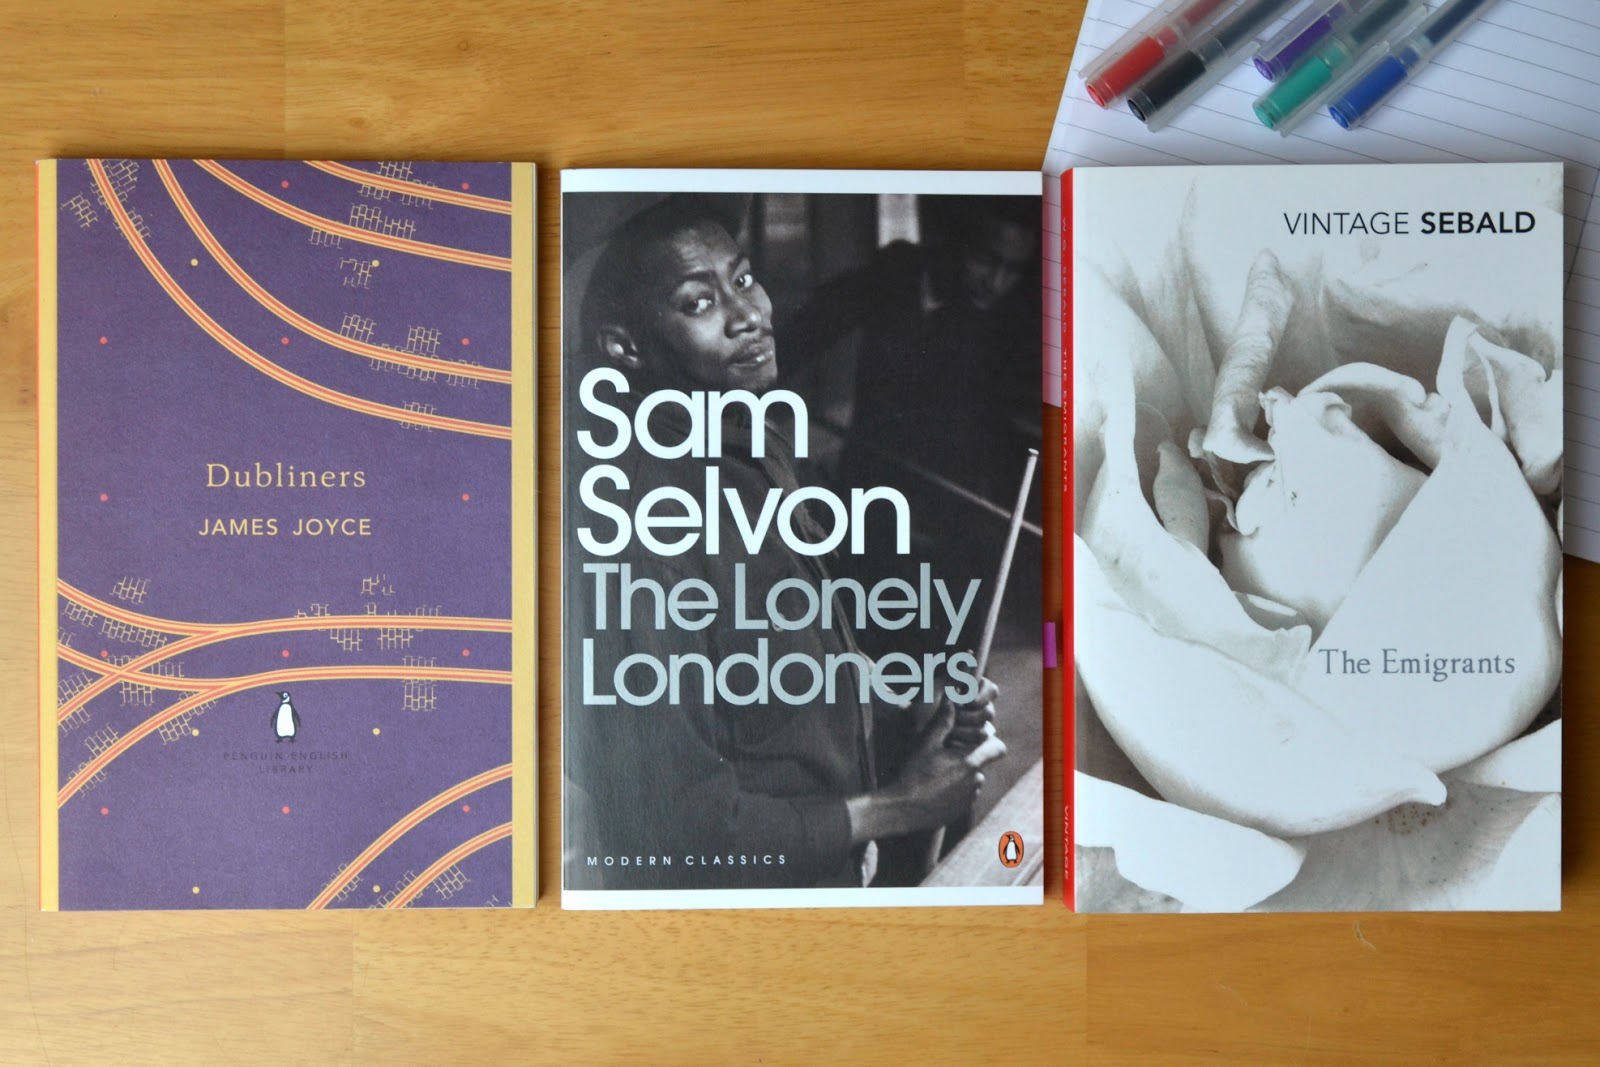 The Lonely Londoners by Sam Selvon, Dancing at Lughnasa by Brian Friel and The Emigrants by W. G. Sebald.